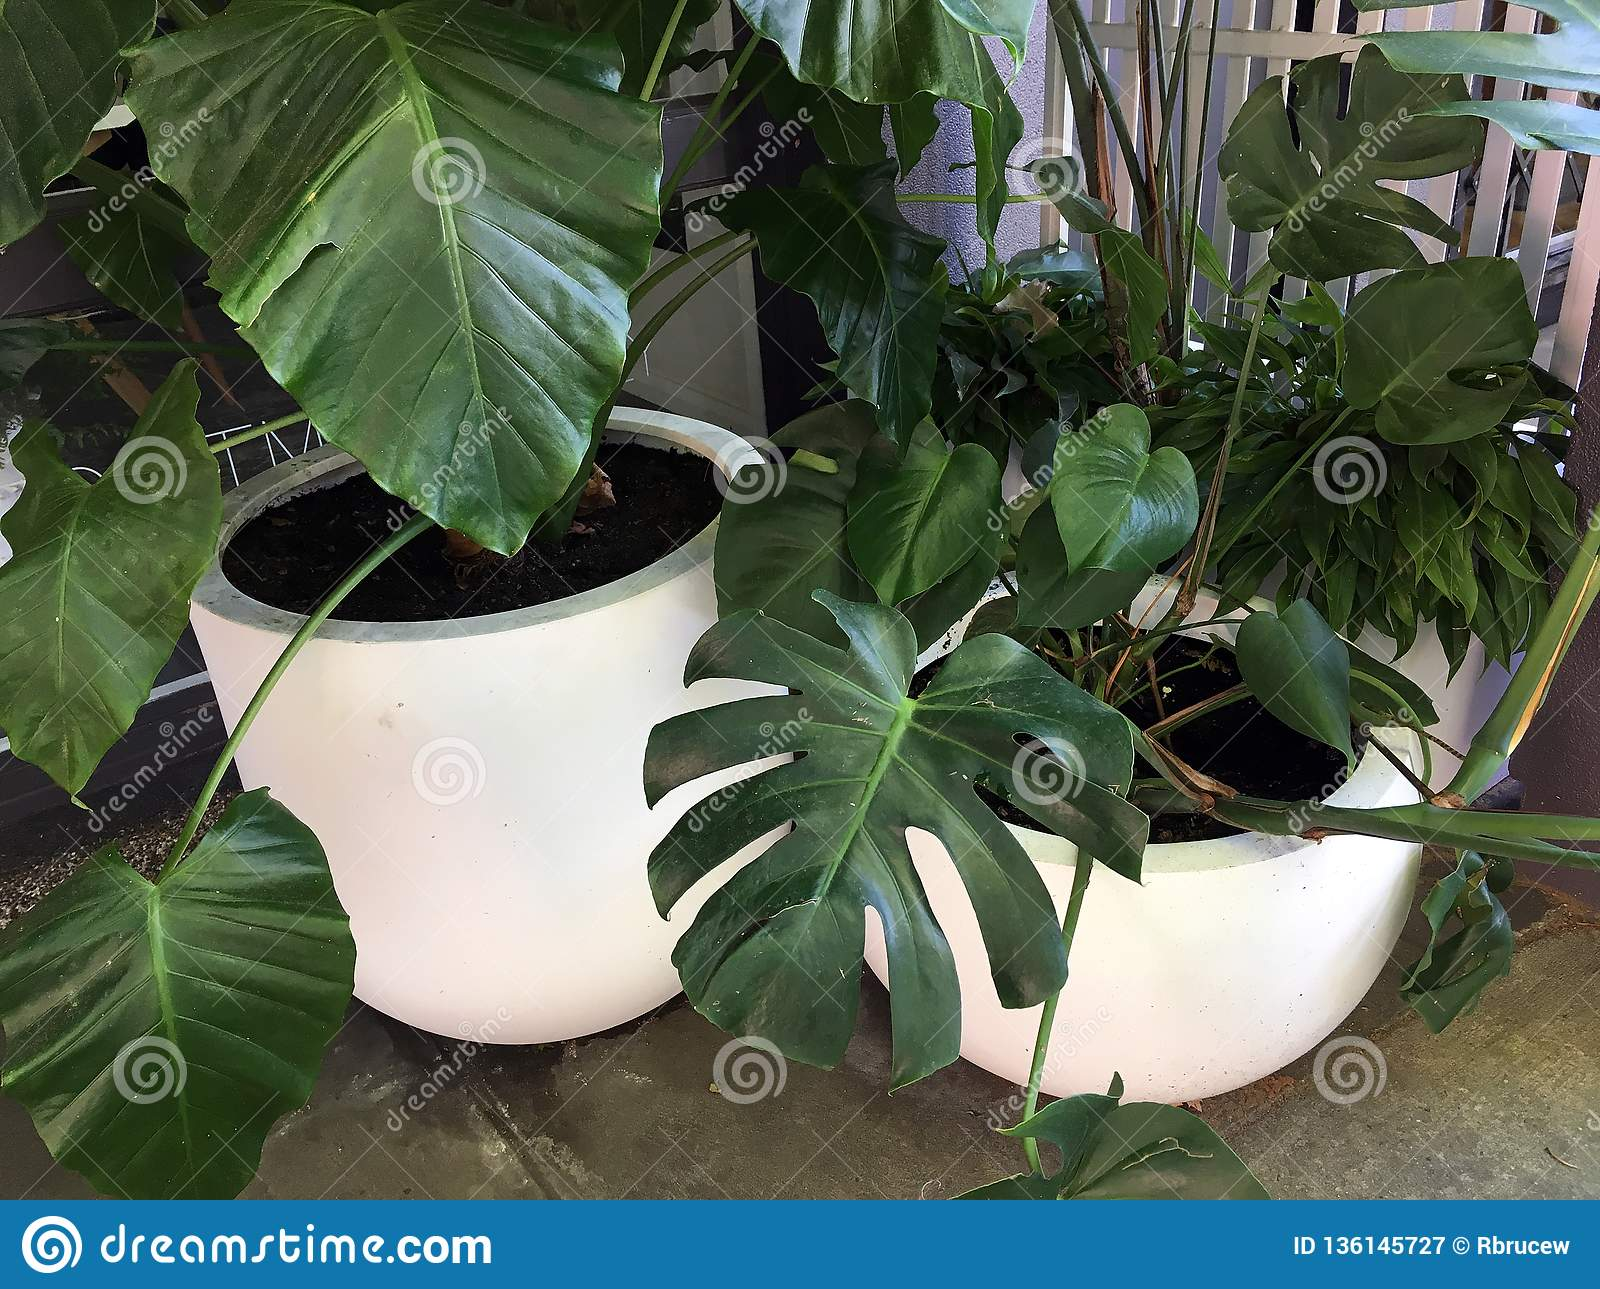 Broad Leaf Green Shrub In Large White Pots Stock Image Image Of